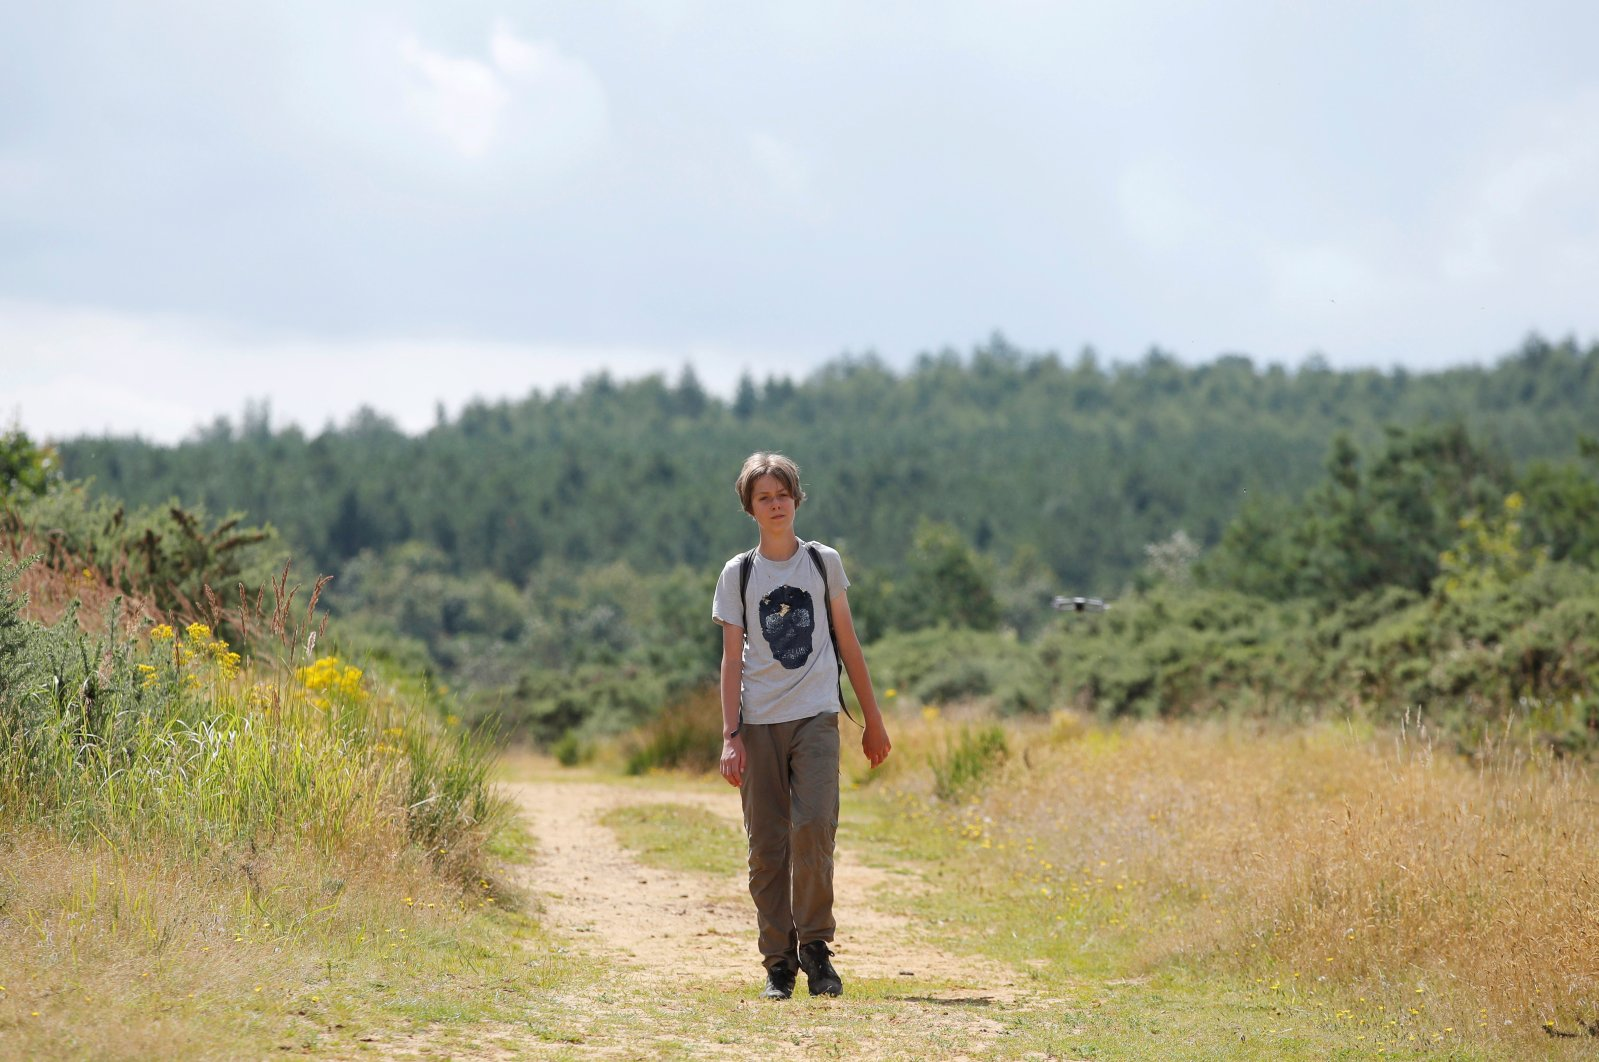 """Jude Walker, 11, during his 210-mile (340-km) walk from Yorkshire to London over 21 days to raise awareness for """"the zero carbon campaign"""" petition, which calls for the government to implement a carbon tax, in Milton Keynes, Britain, Aug. 10, 2021. (REUTERS/Andrew Couldridge)"""